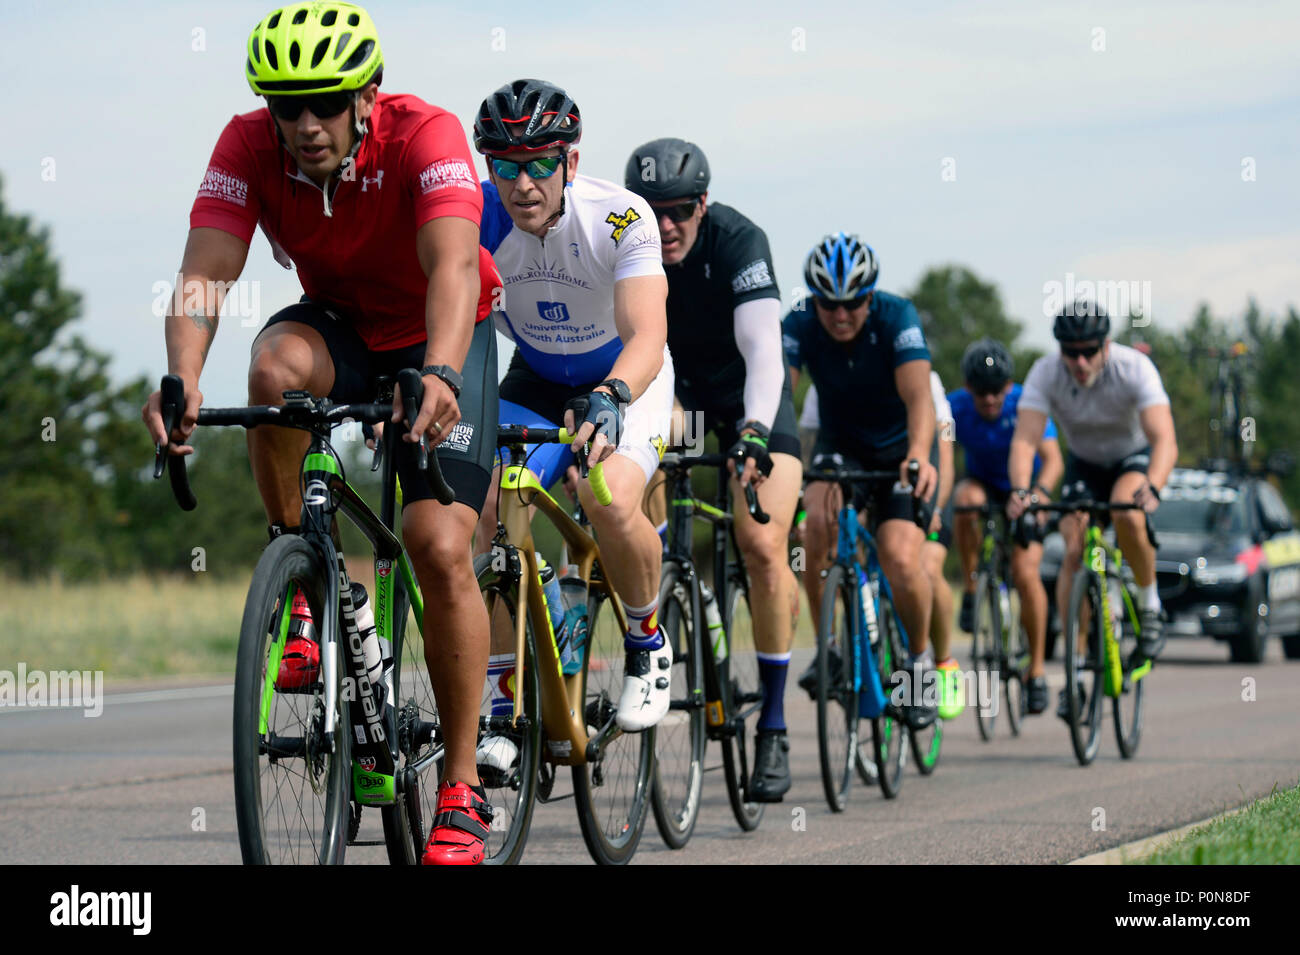 A peloton in the cycling distance race during the 2018 Warrior Games held at the Air Force Academy in Colorado Springs June 6, 2018. Created in 2010, the DoD Warrior Games introduce wounded, ill and injured service members and veterans to Paralympic-style sports. Warrior Games showcases the resilient spirit of today's wounded, ill or injured service members from all branches of the military. These athletes have overcome significant physical and behavioral injuries and prove that life can continue after becoming wounded, ill or injured.  (Photo by Michael Bottoms, USSOCOM Office of Communicatio Stock Photo